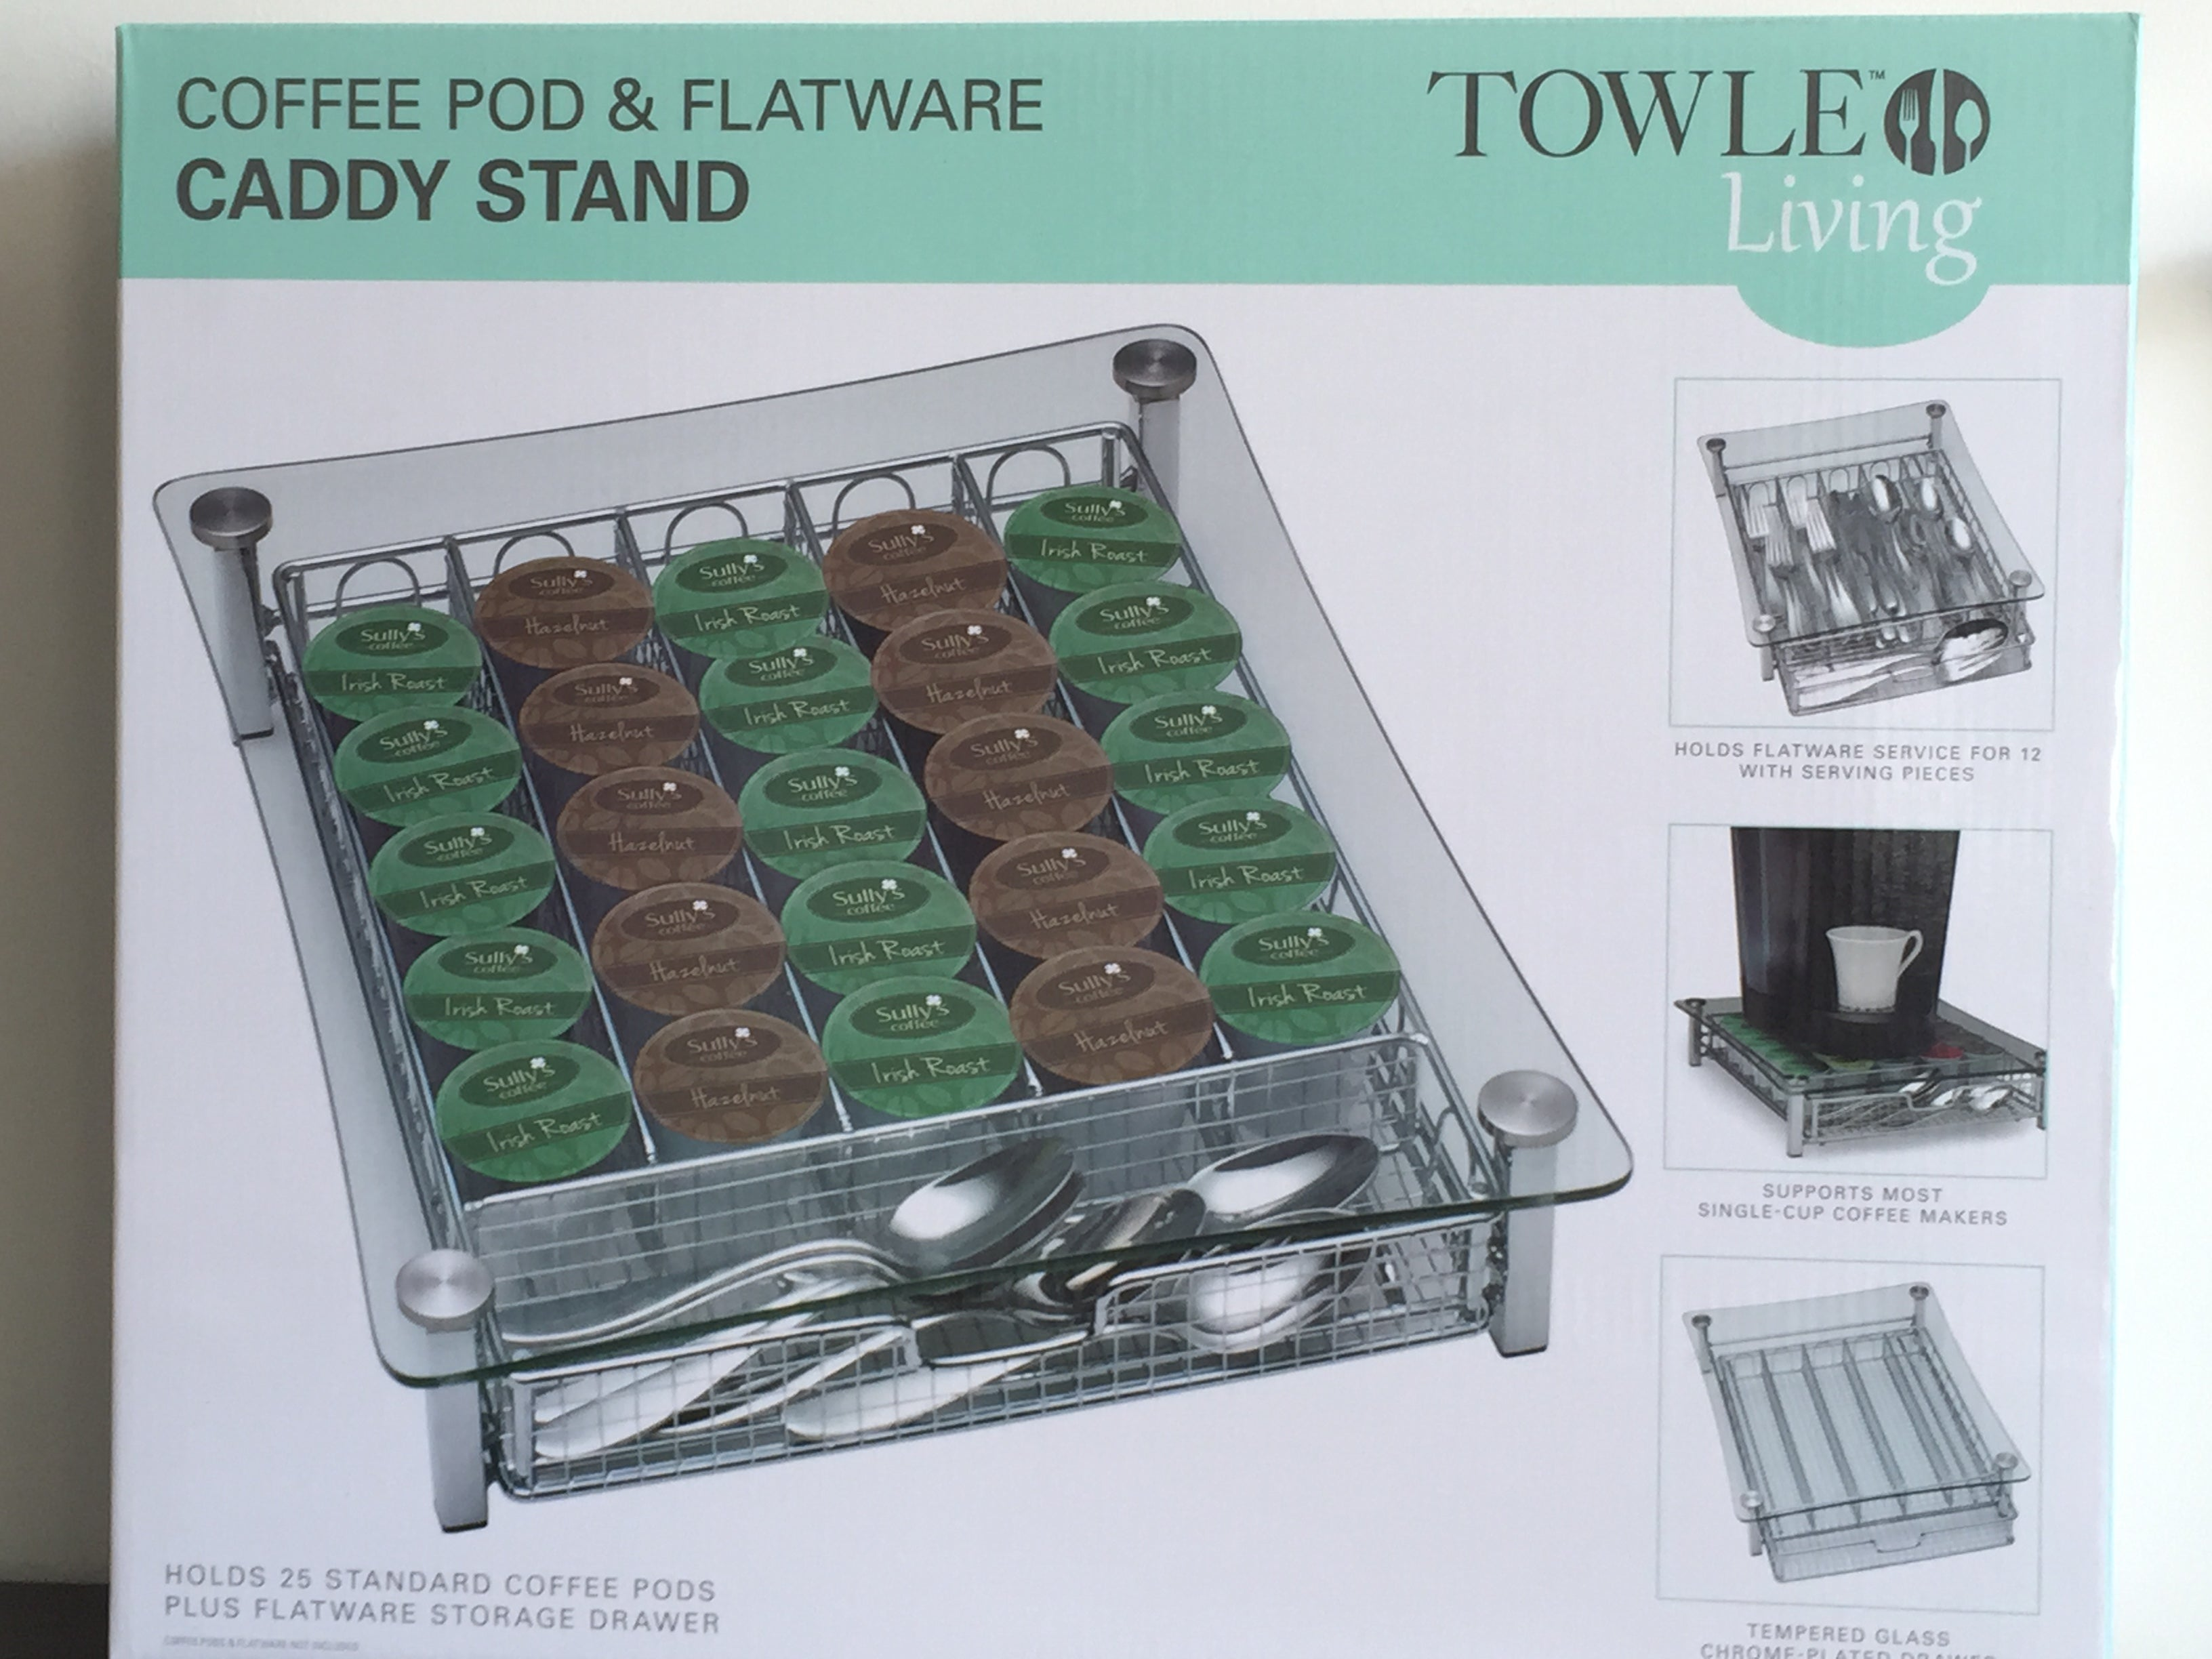 Lot of 40 PCS New Towle Living Coffee Pod and Flatware Caddy Stand